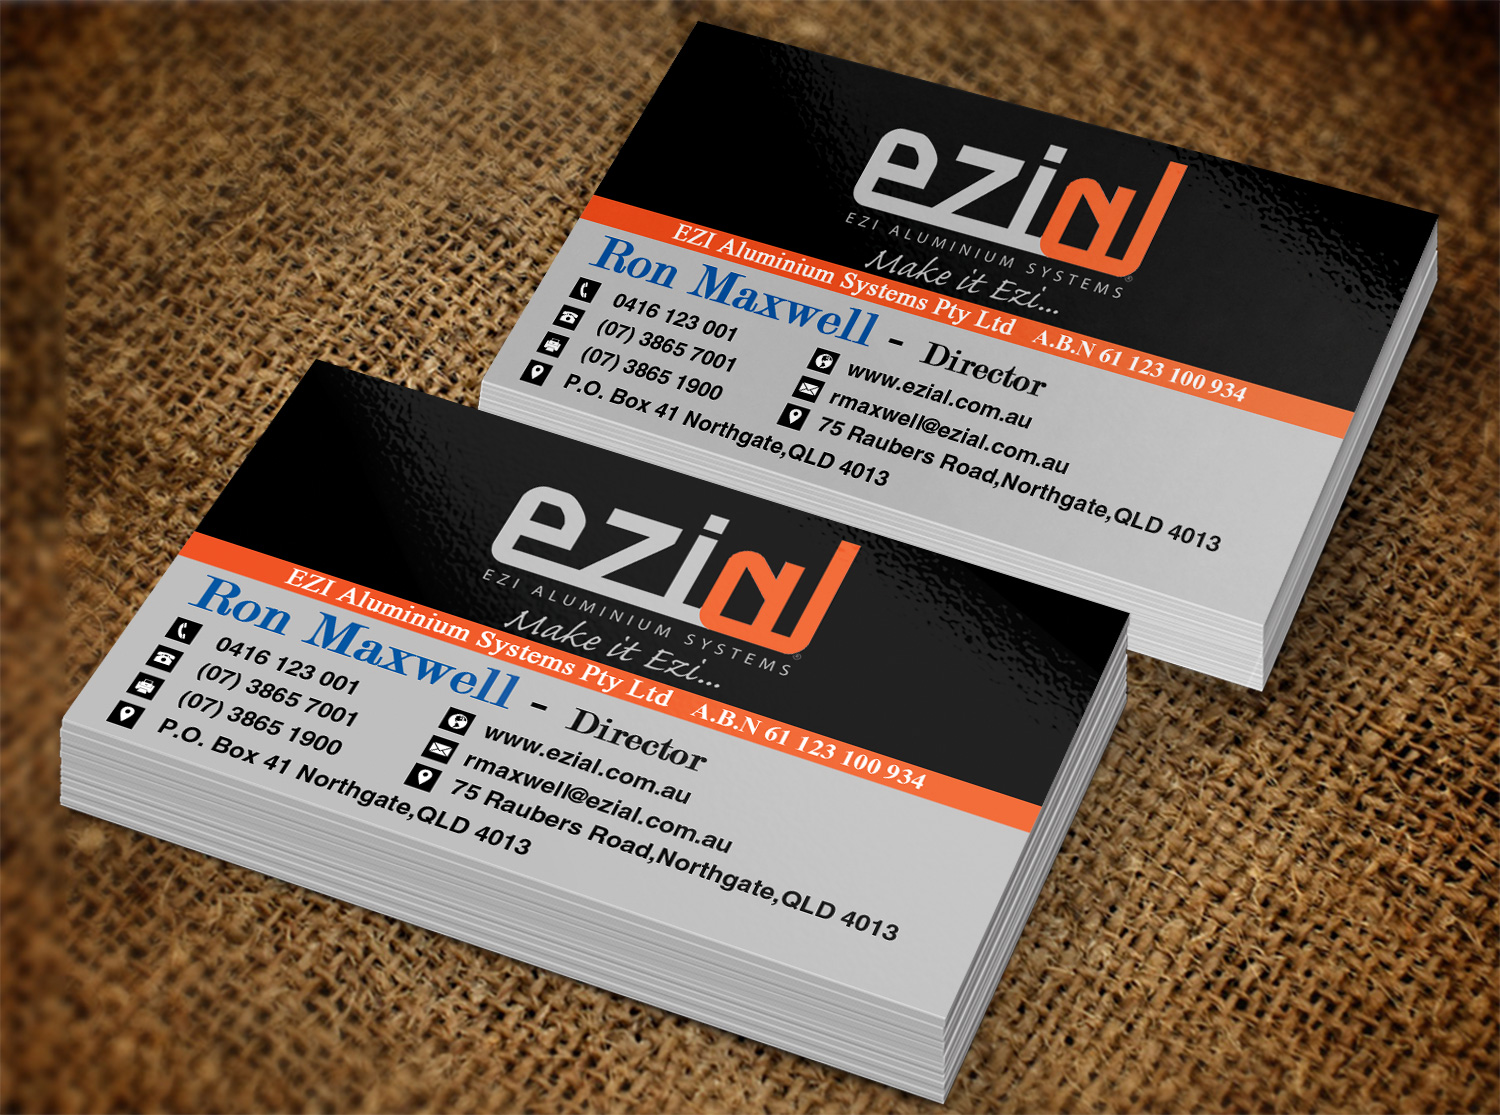 Modern professional building business card design for ezi business card design by creation lanka for ezi aluminium systems pty ltd design 7433735 colourmoves